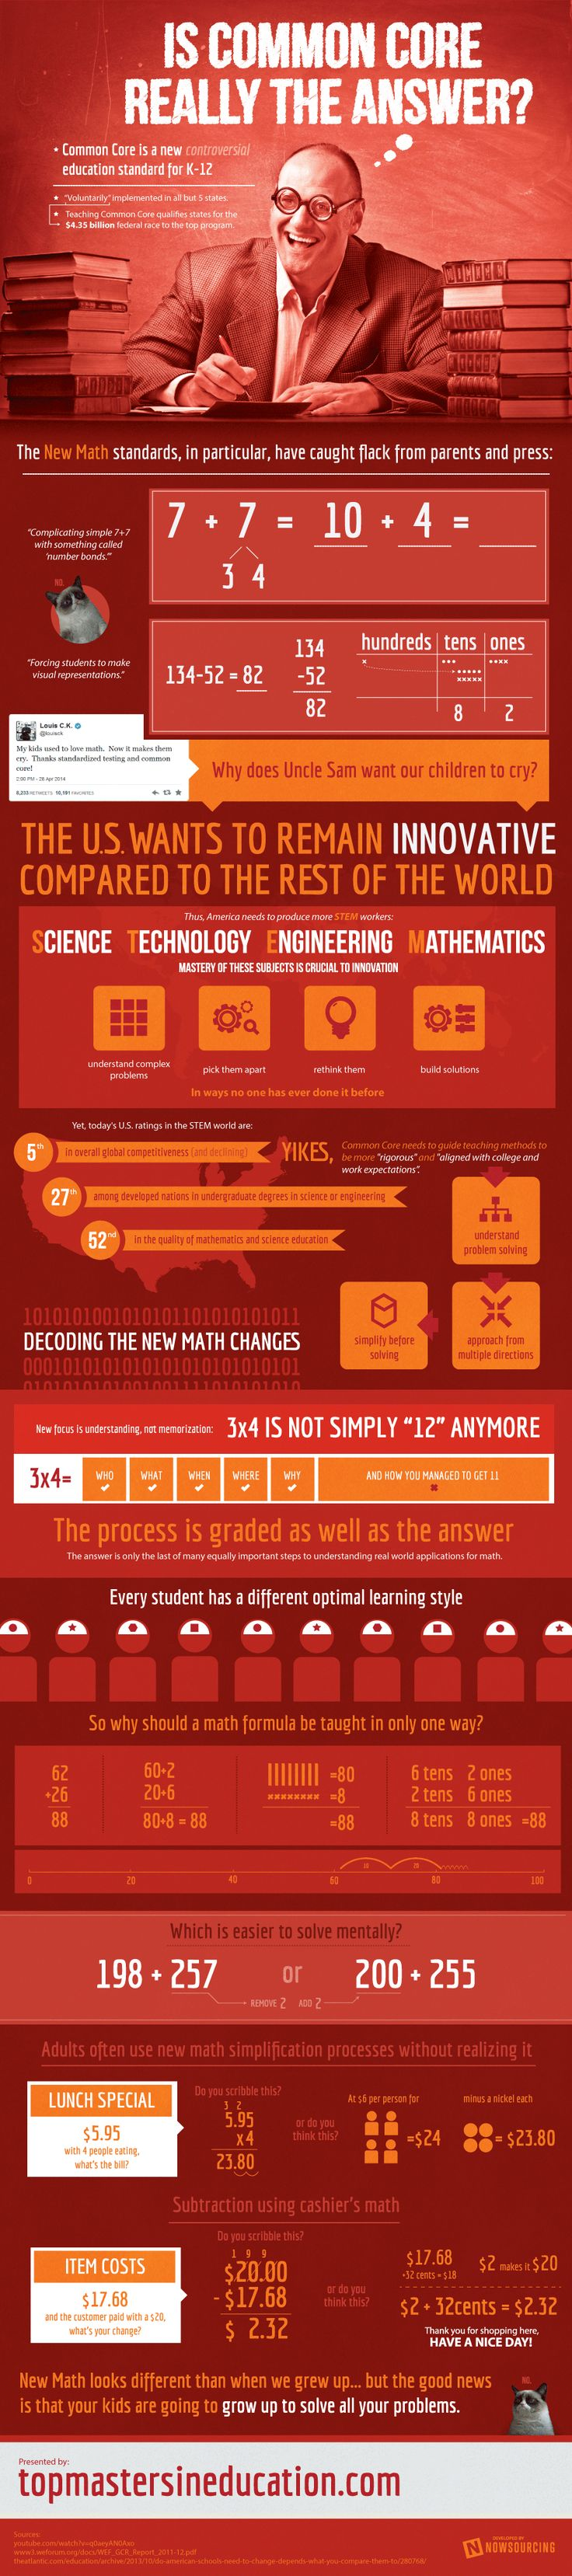 What Is Common Core [Infographic] Image Common Core2